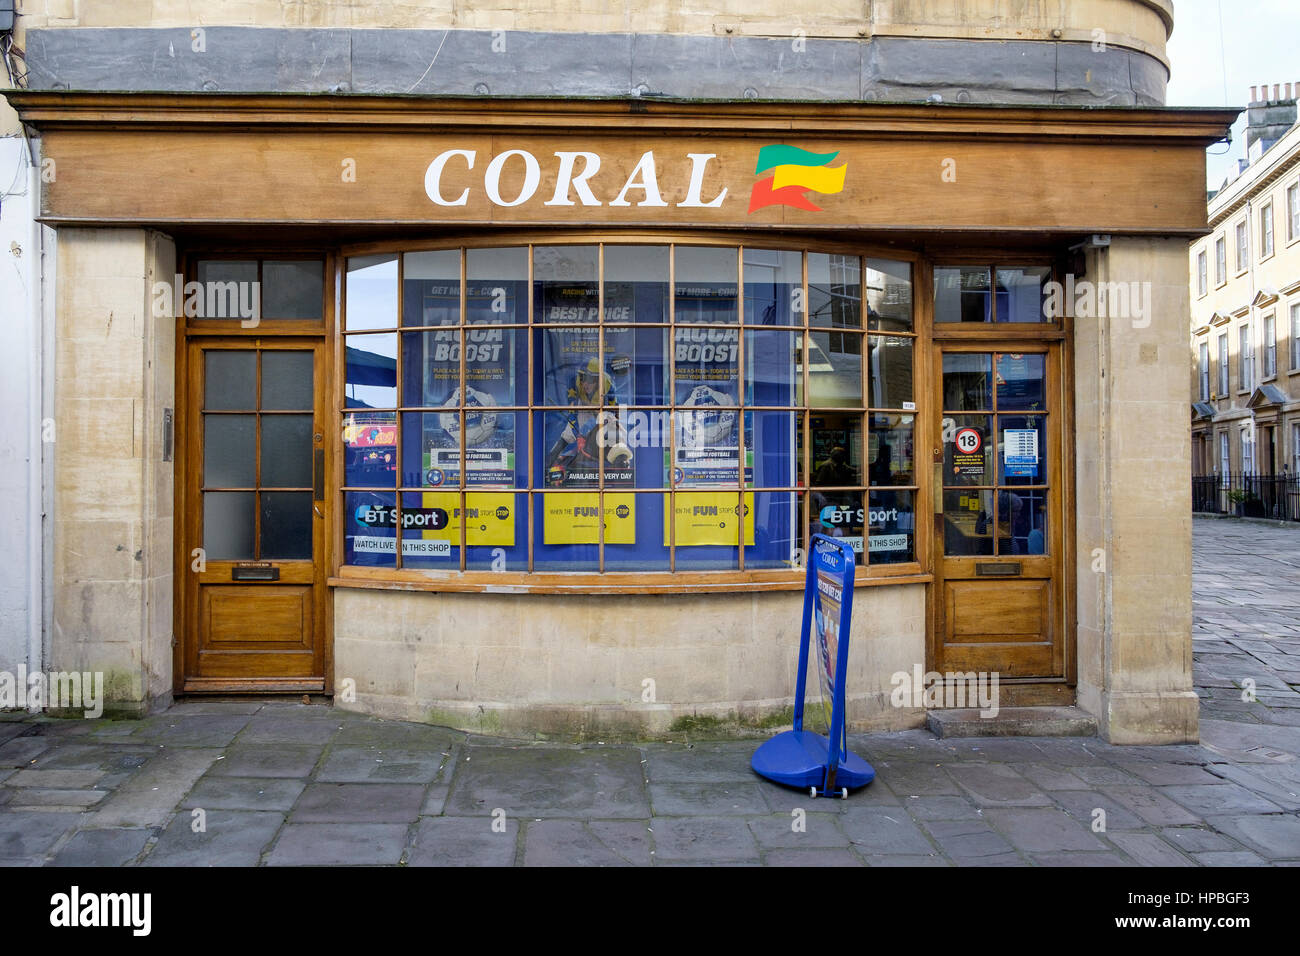 A Coral bookmakers / bookies high street betting shop front is pictured in Bath. - Stock Image